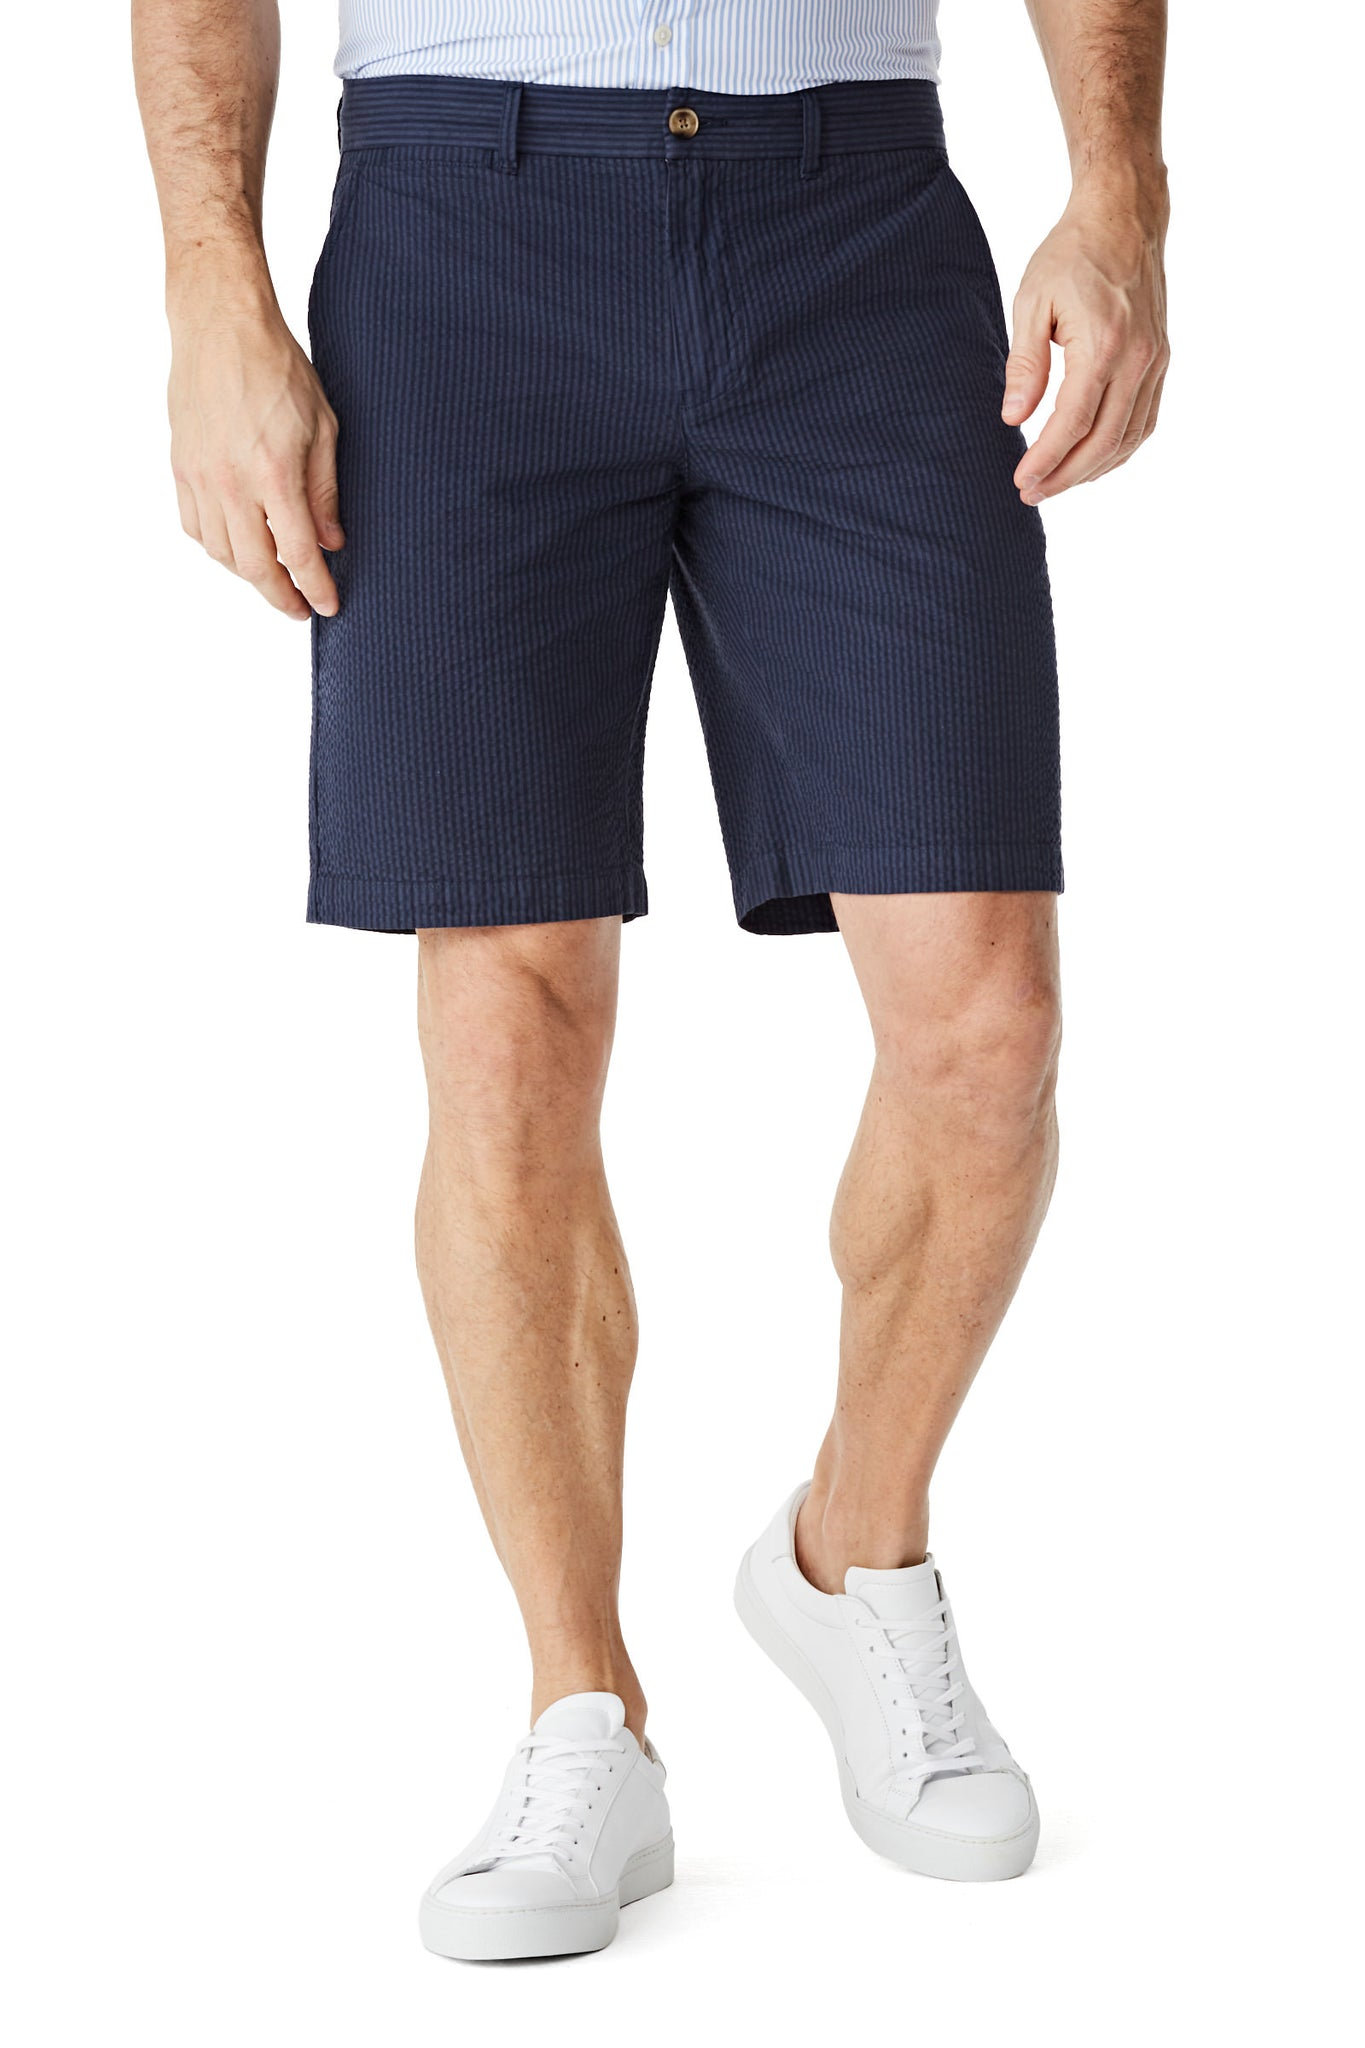 McG Regular fit seersucker shorts